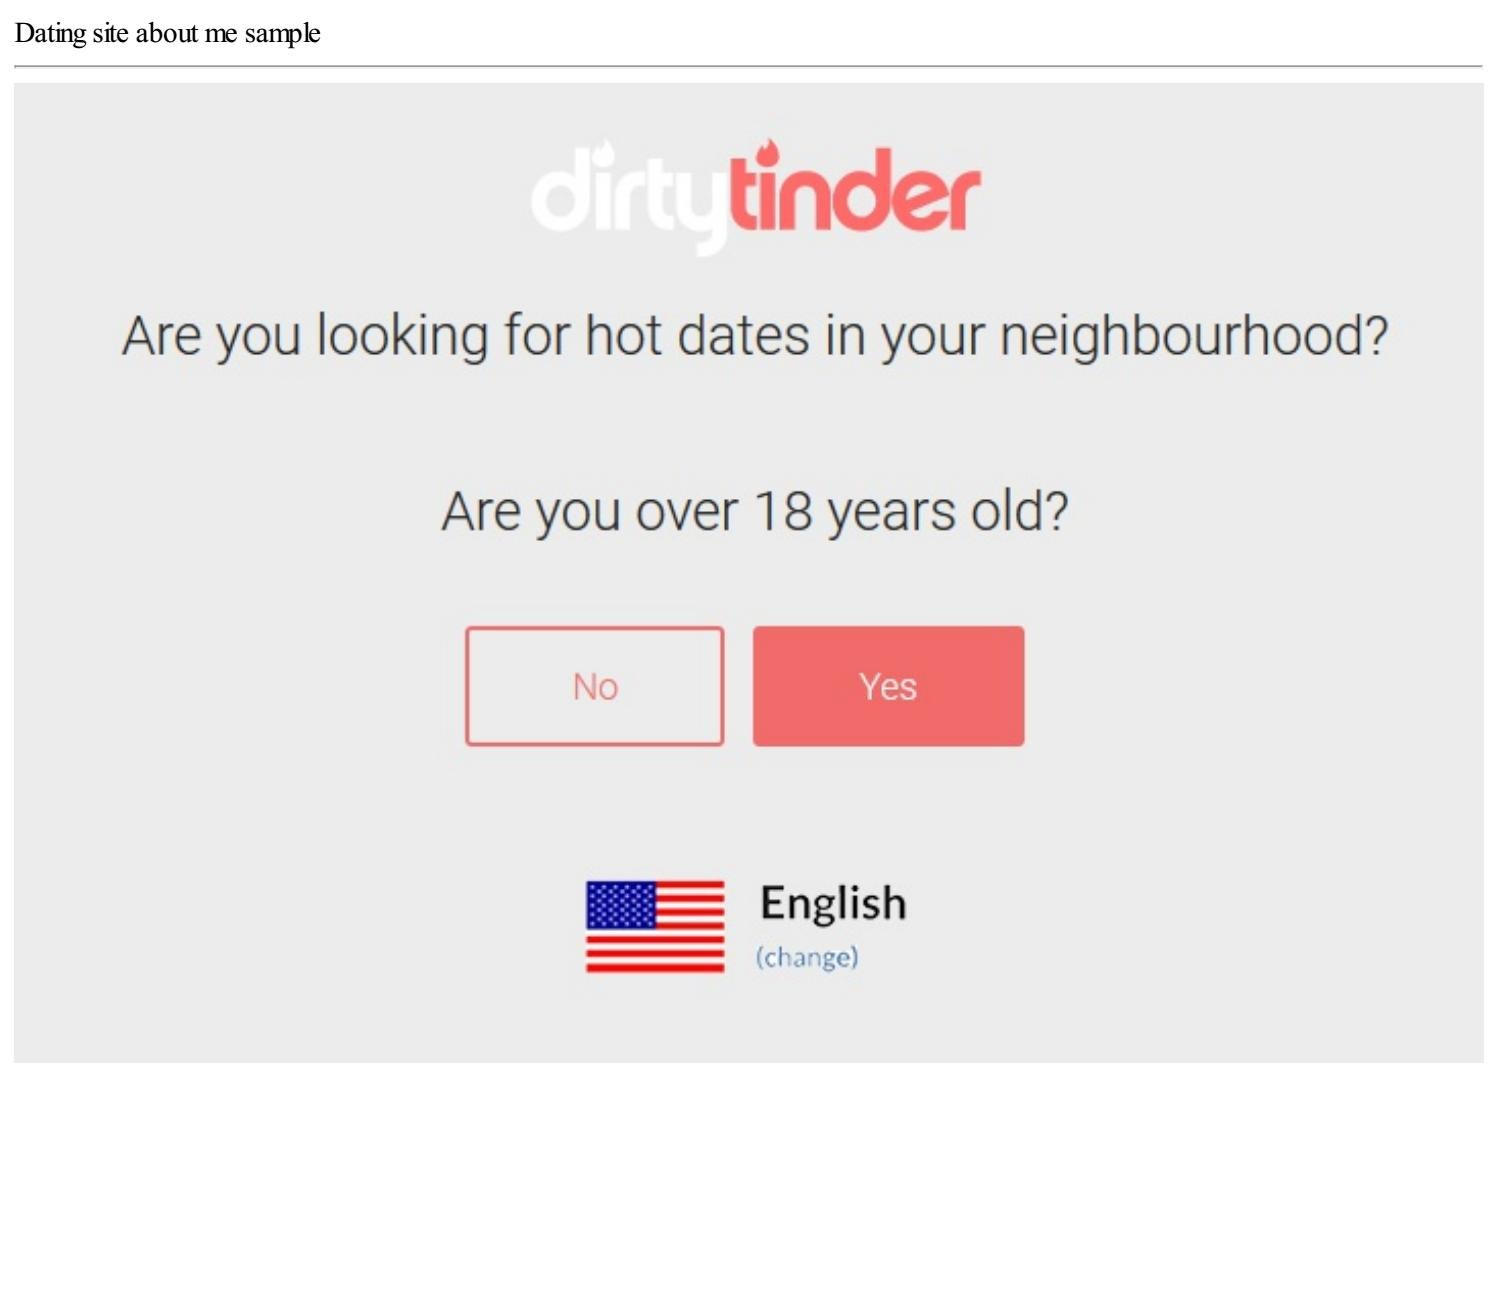 dating sites about.com